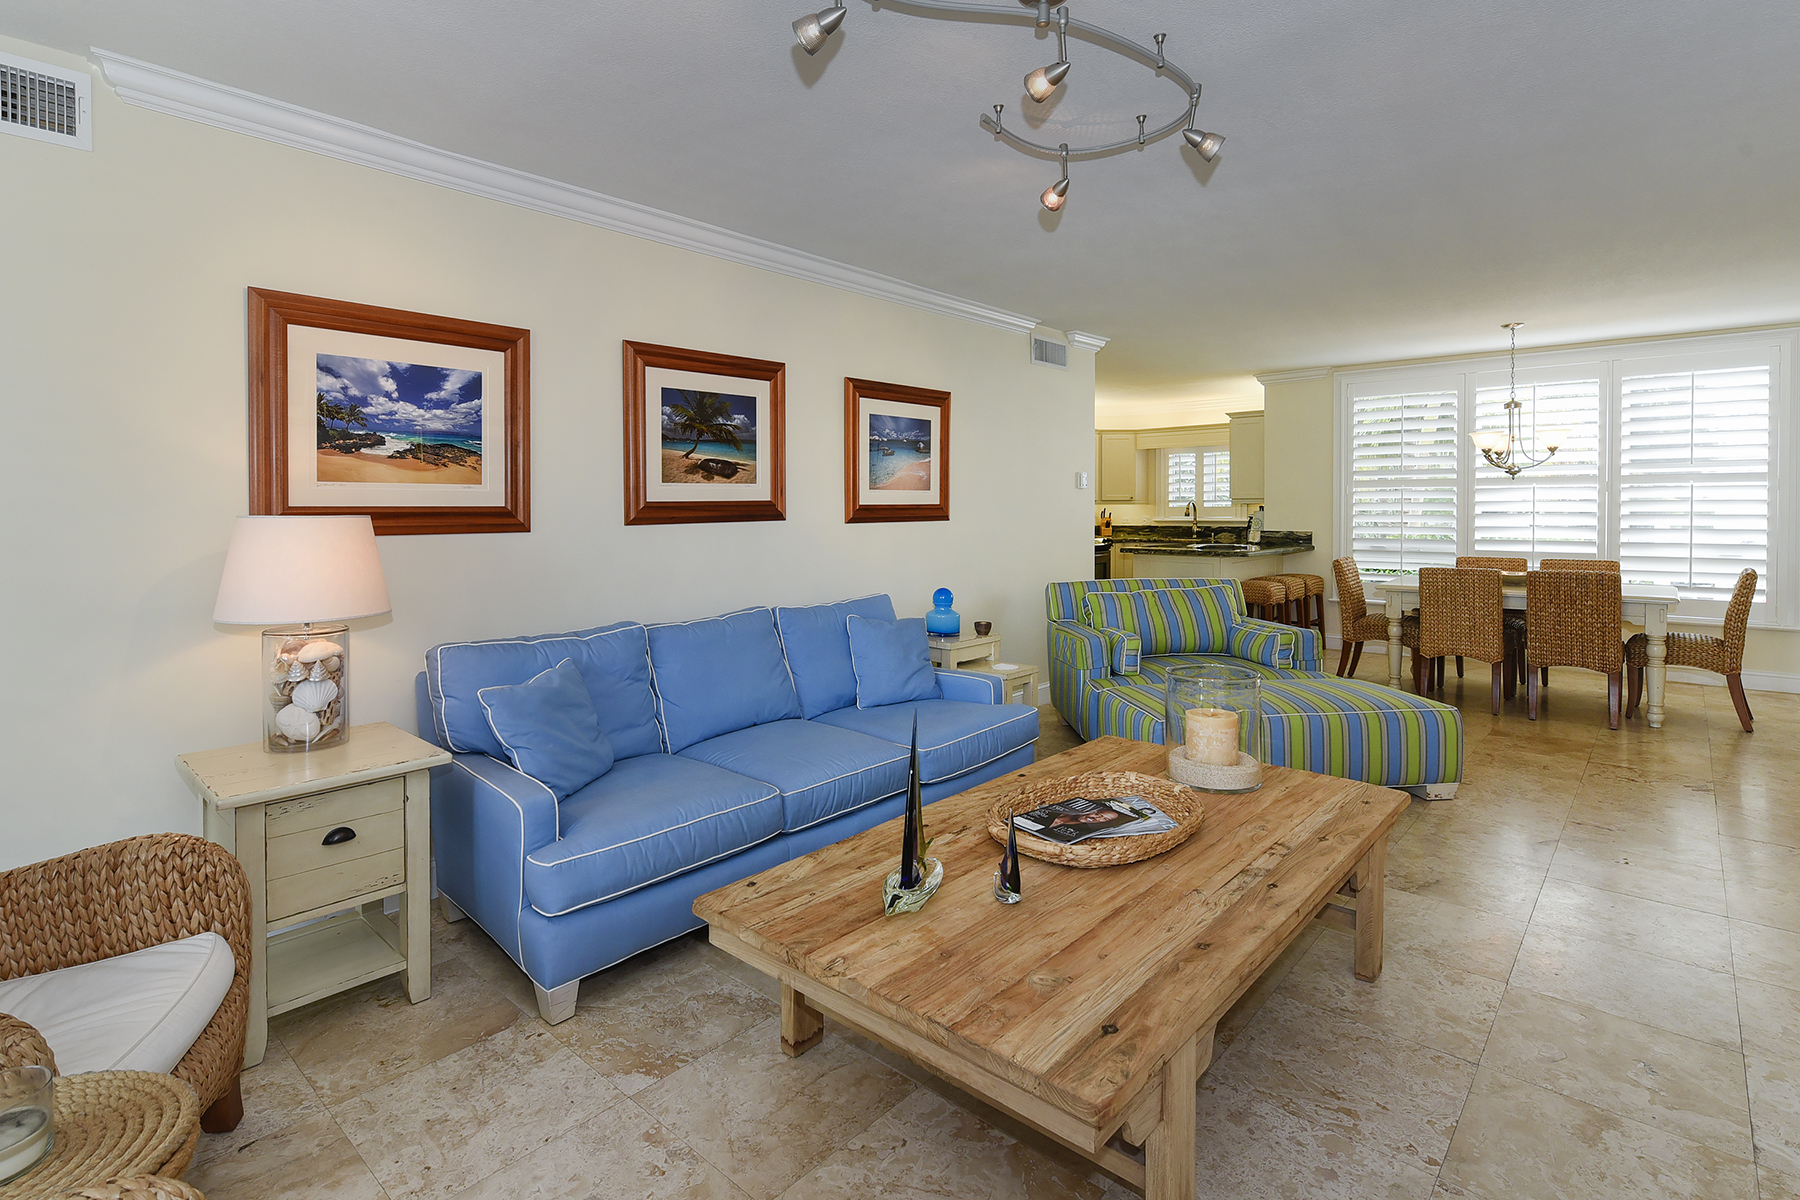 Condominium for Sale at Canal Front Condominium at Ocean Reef 28 Marlin Lane, Unit A Ocean Reef Community, Key Largo, Florida, 33037 United States